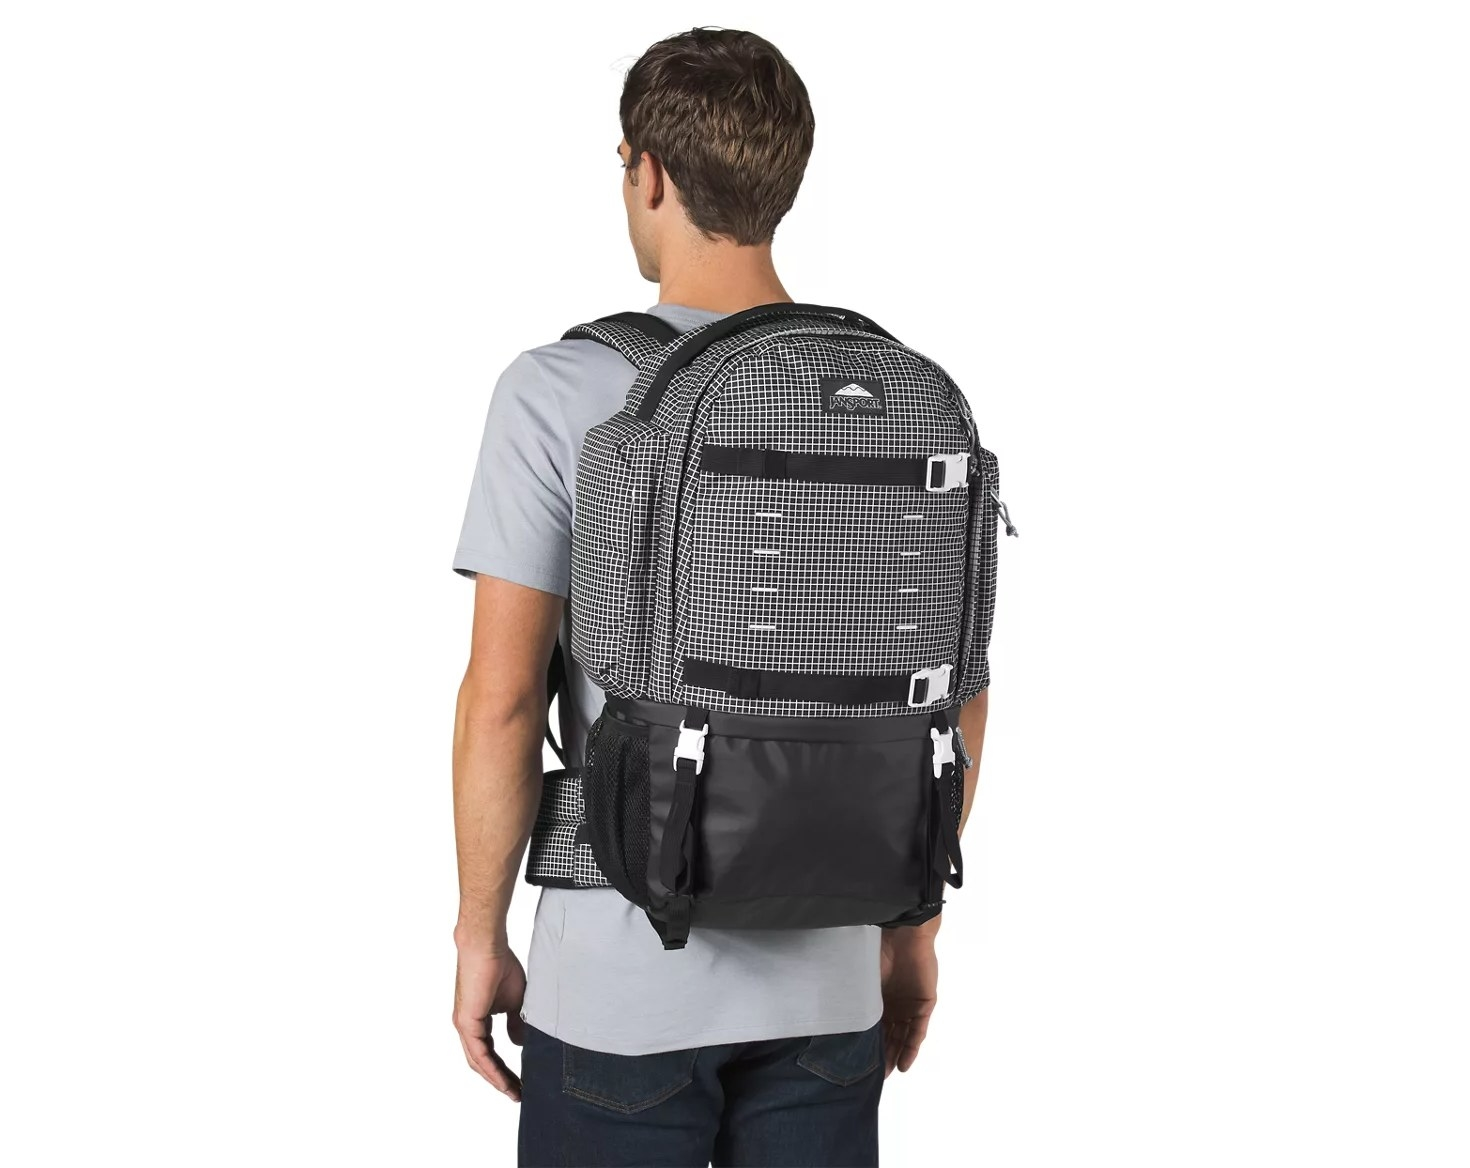 a model wearing the gray and black backpack